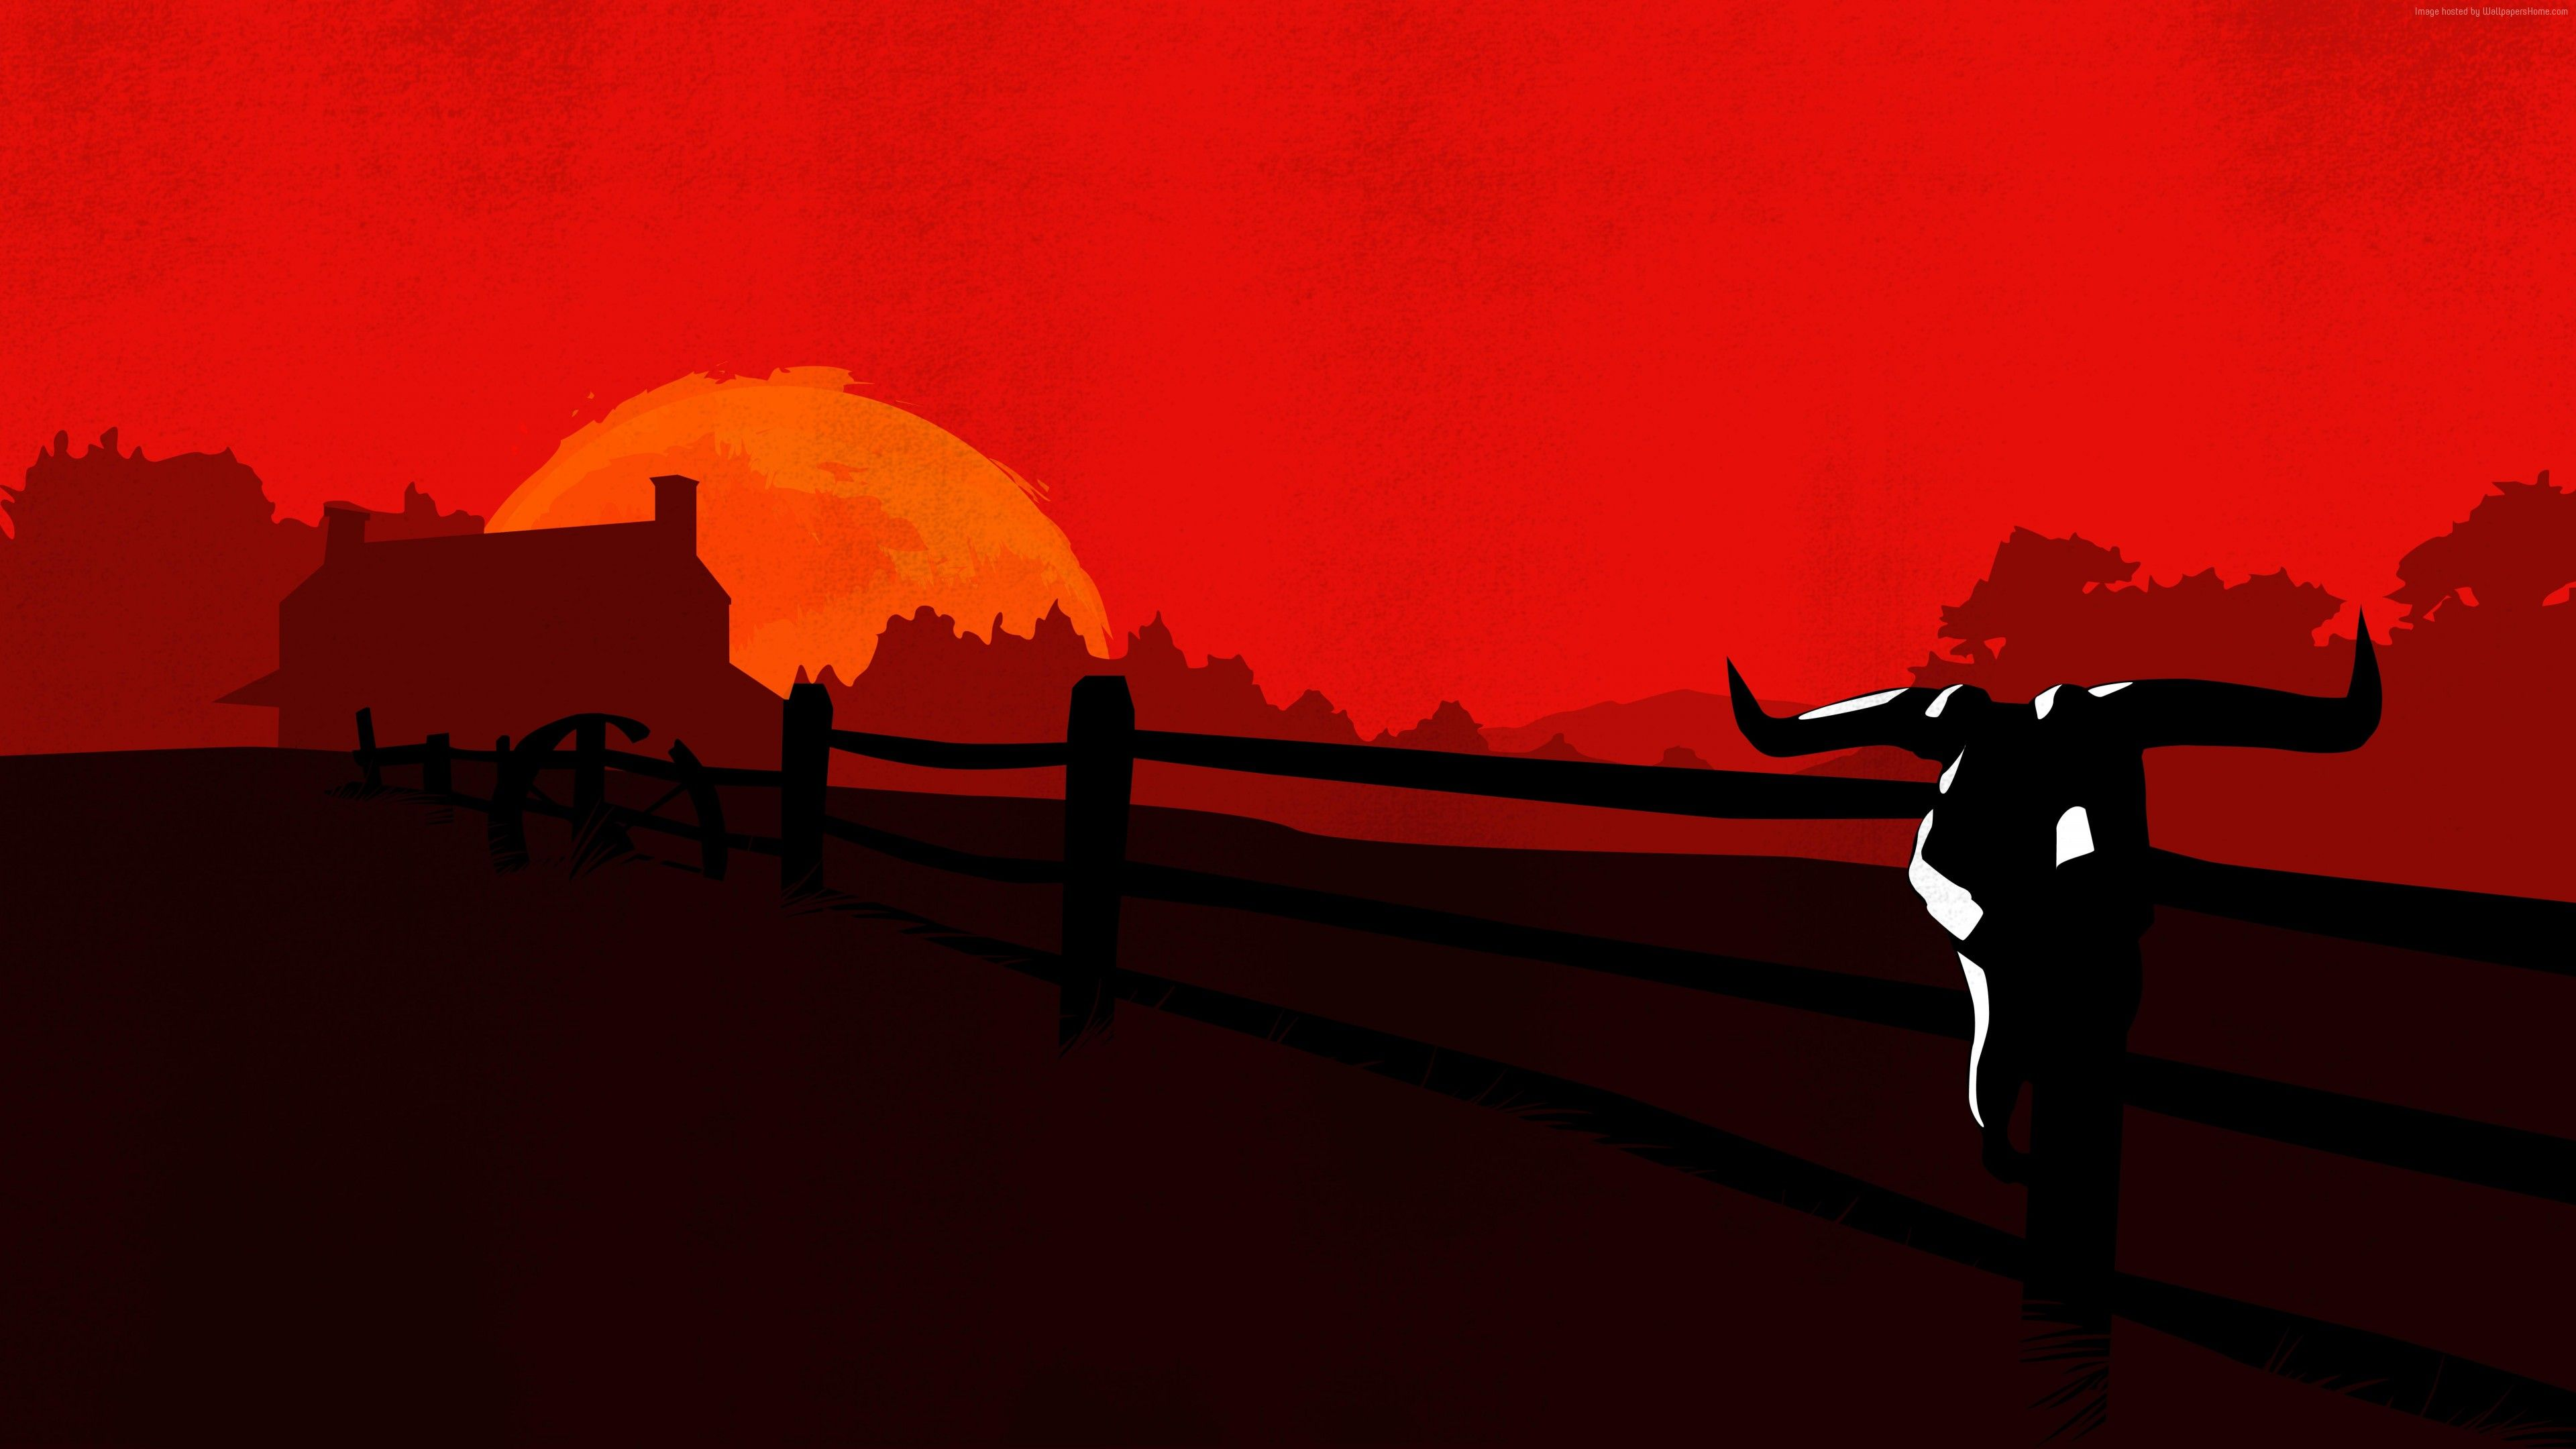 Red Dead Redemption 2 Https Livewallpaperswide Com Games Red Dead Redemption 2 6 10100 4k 8k Poster Red Dead Redemp Red Dead Redemption Wallpaper Painting